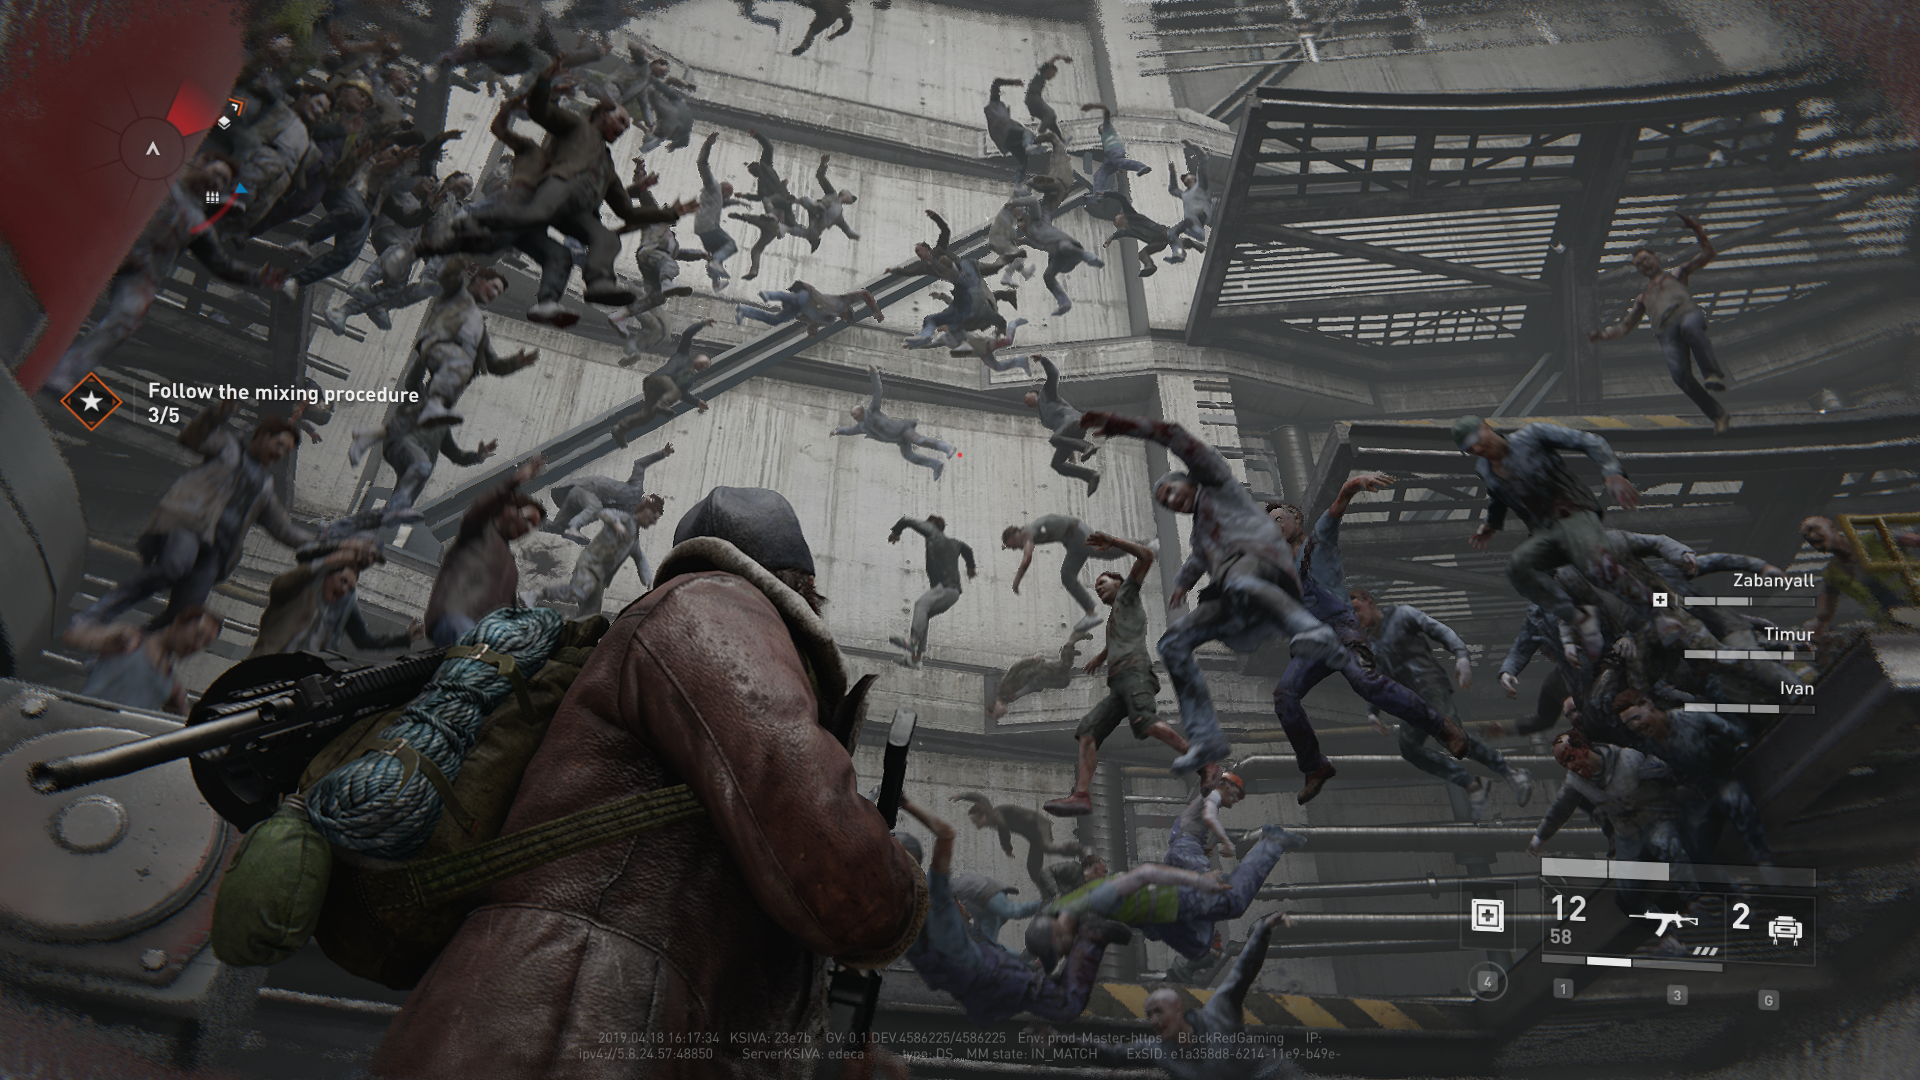 Seeing zombies rain down is still a frightening and amazing experience.